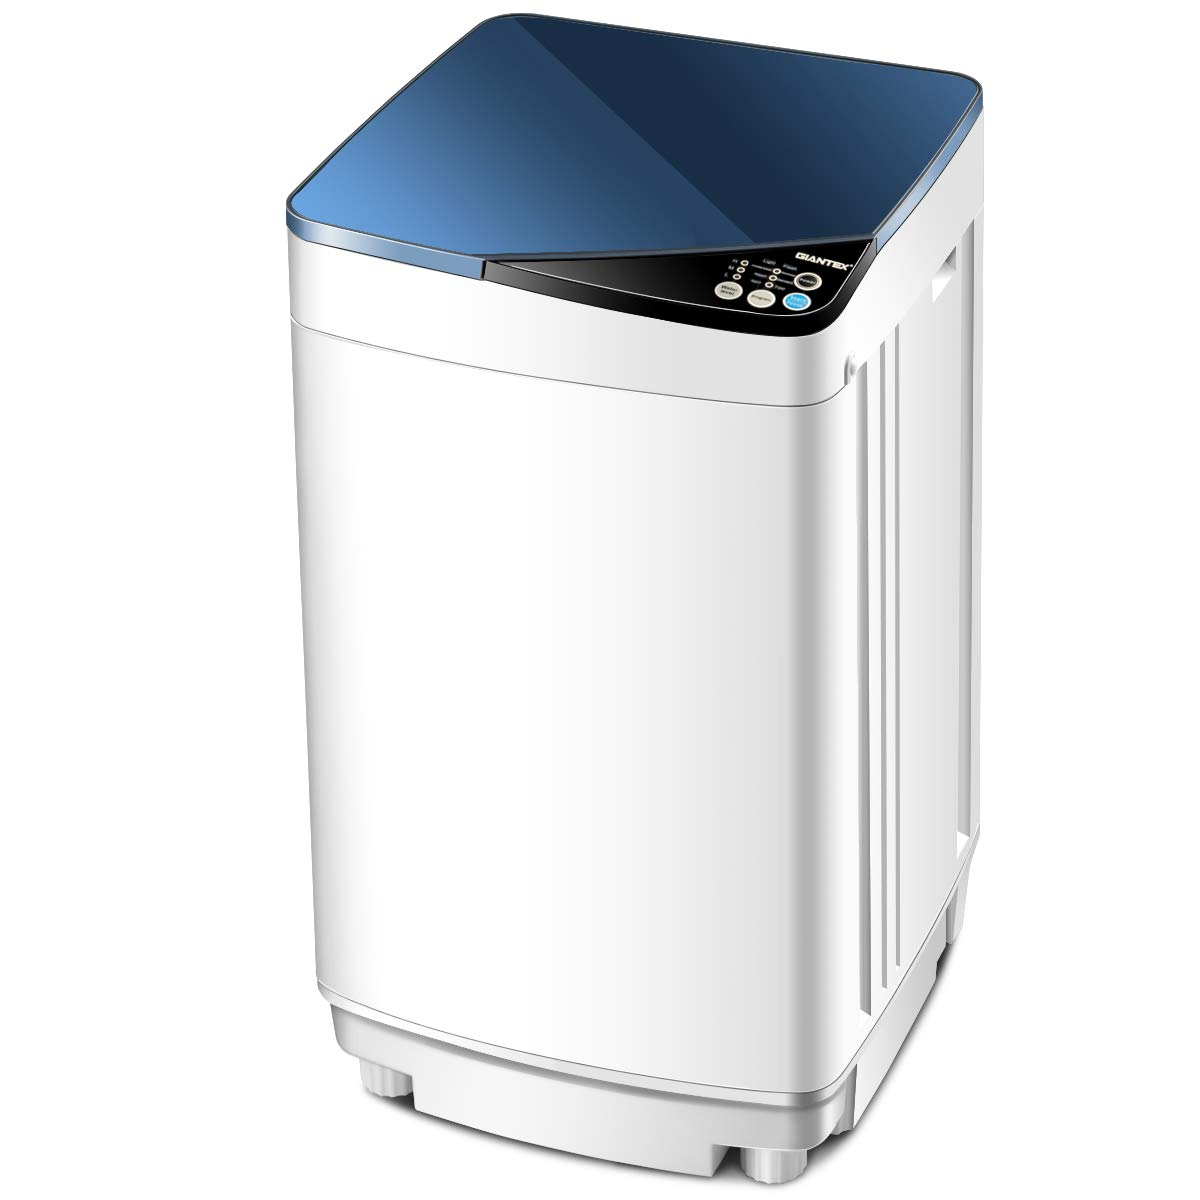 Giantex Full-Automatic Washing Machine Portable Washer and Spin Dryer 10 lbs Capacity Compact Laundry Washer with Built-in Barrel Light Drain Pump and Long Hose for Apartments Camping (White & Blue) by Giantex